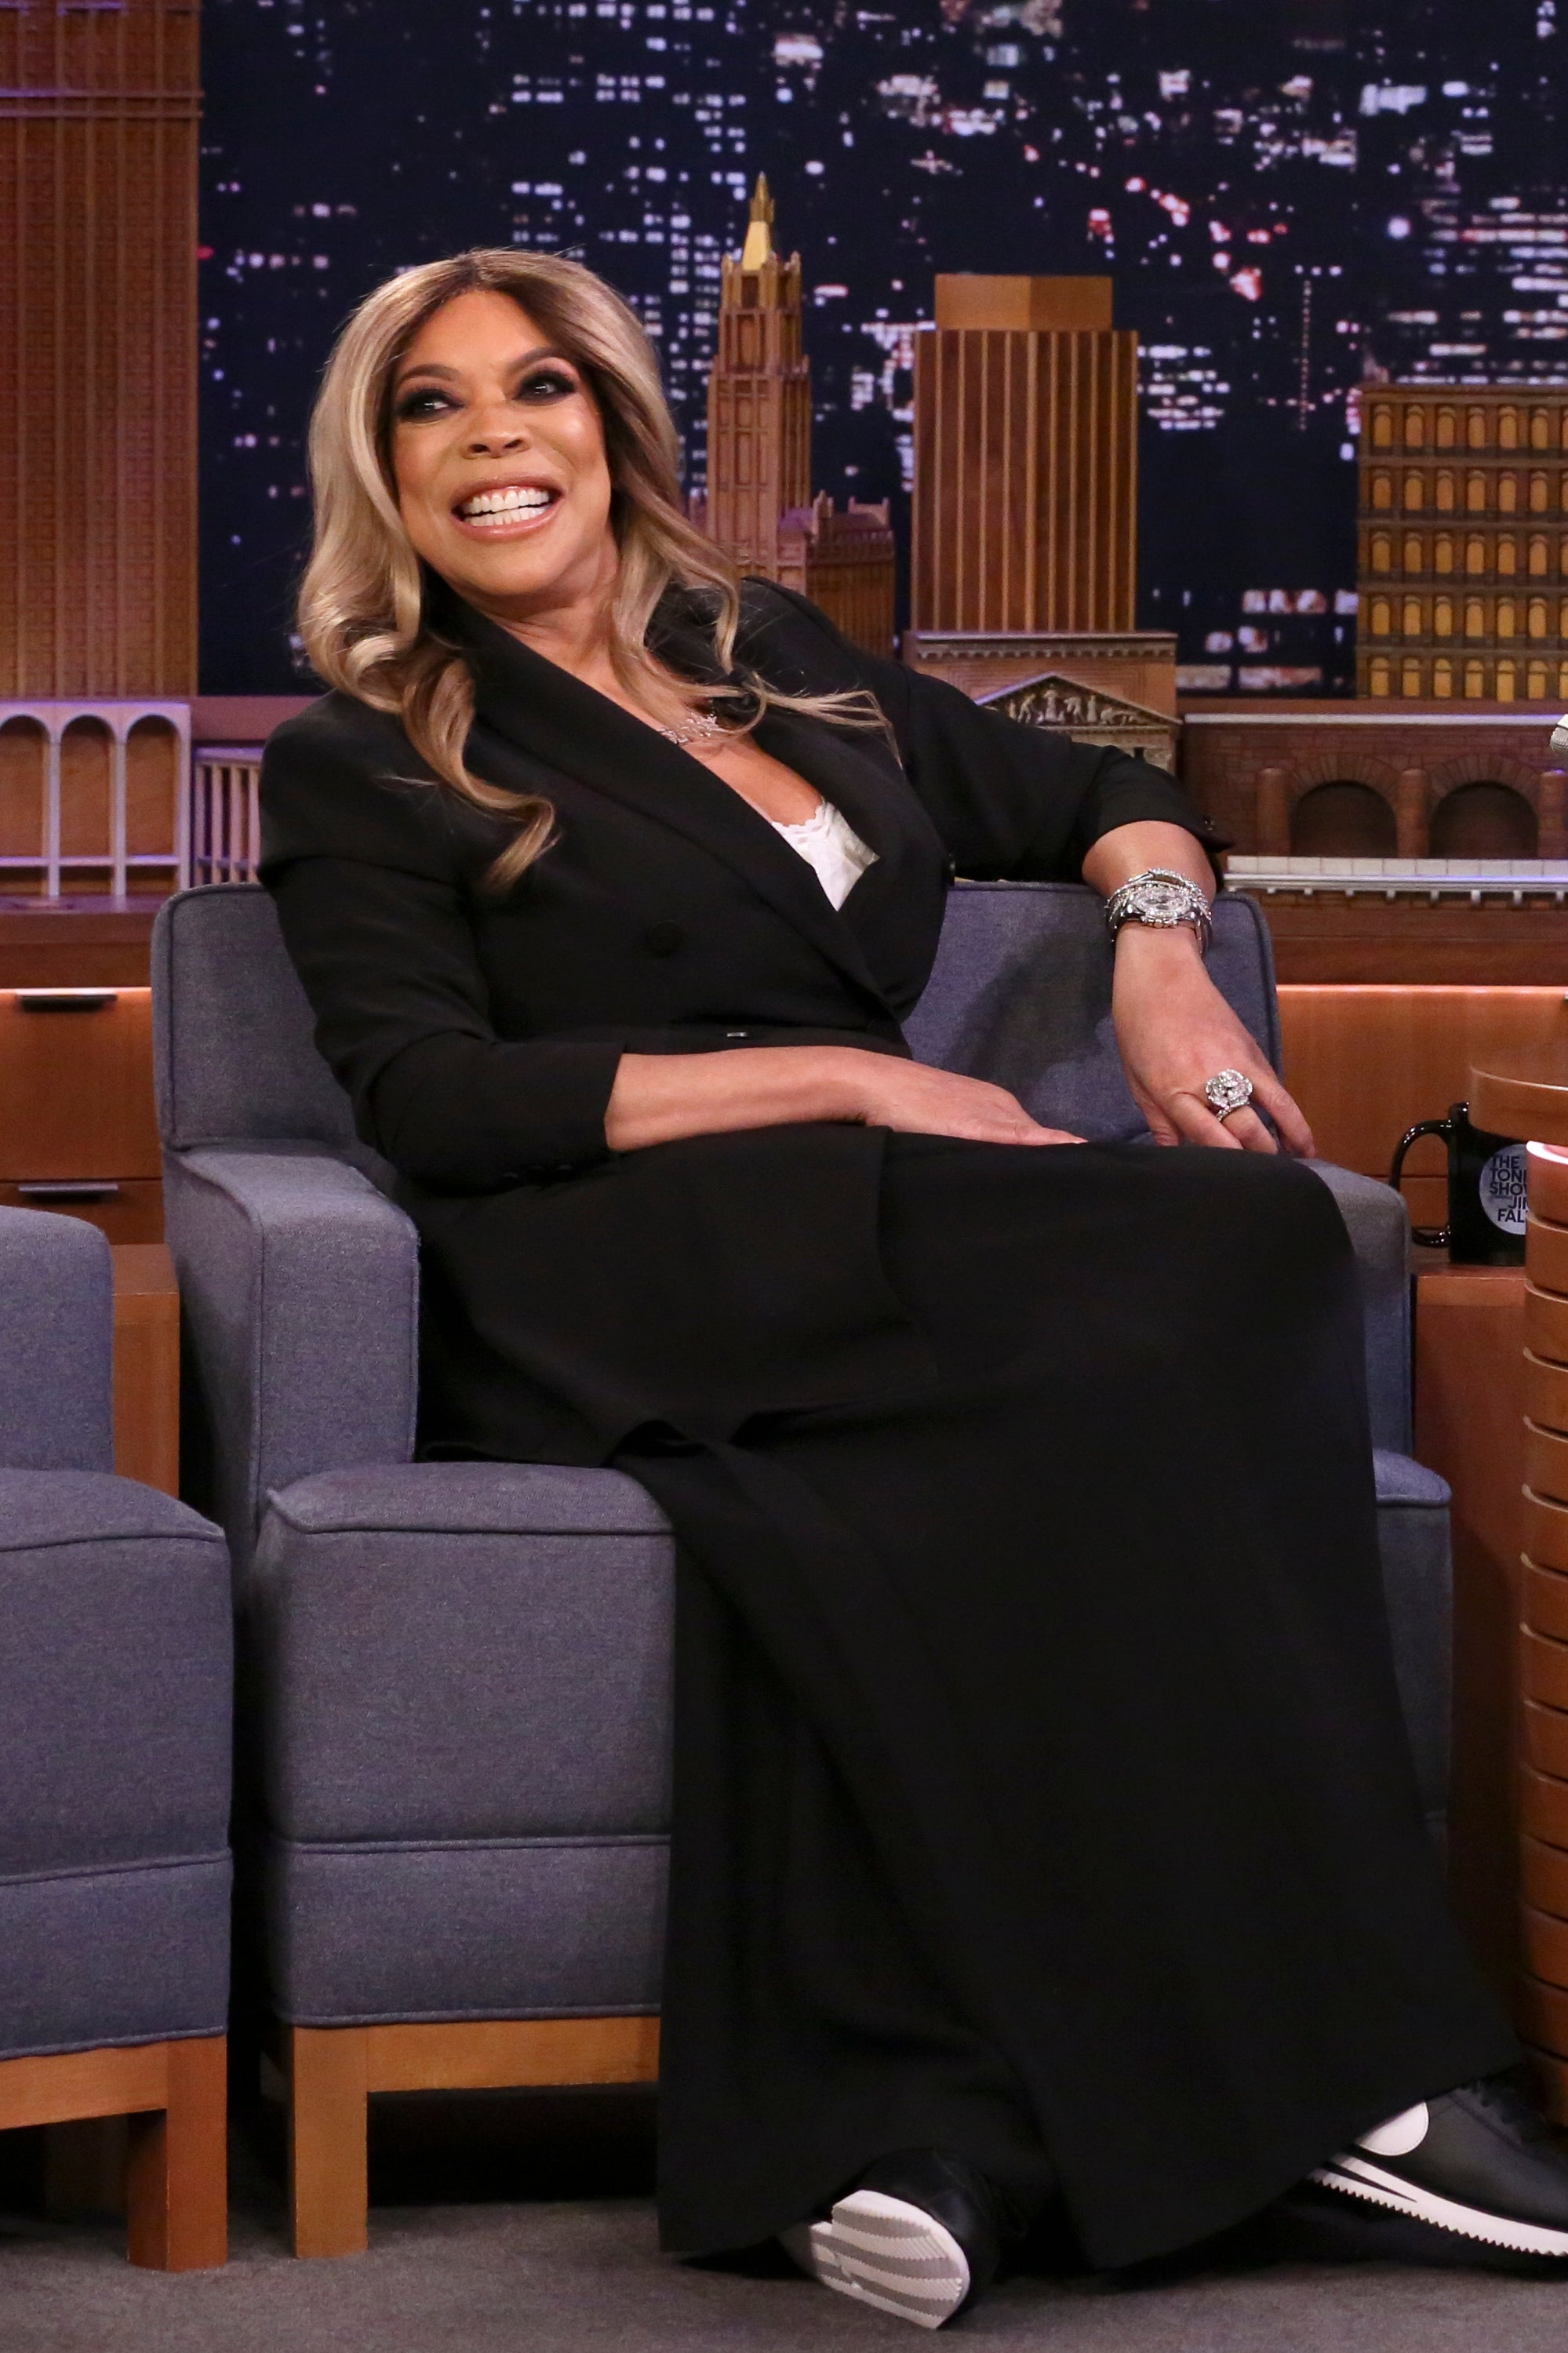 Wendy Williams' Divorce If Ultimate: 'The New Bankruptcy Has Been So Pretty'